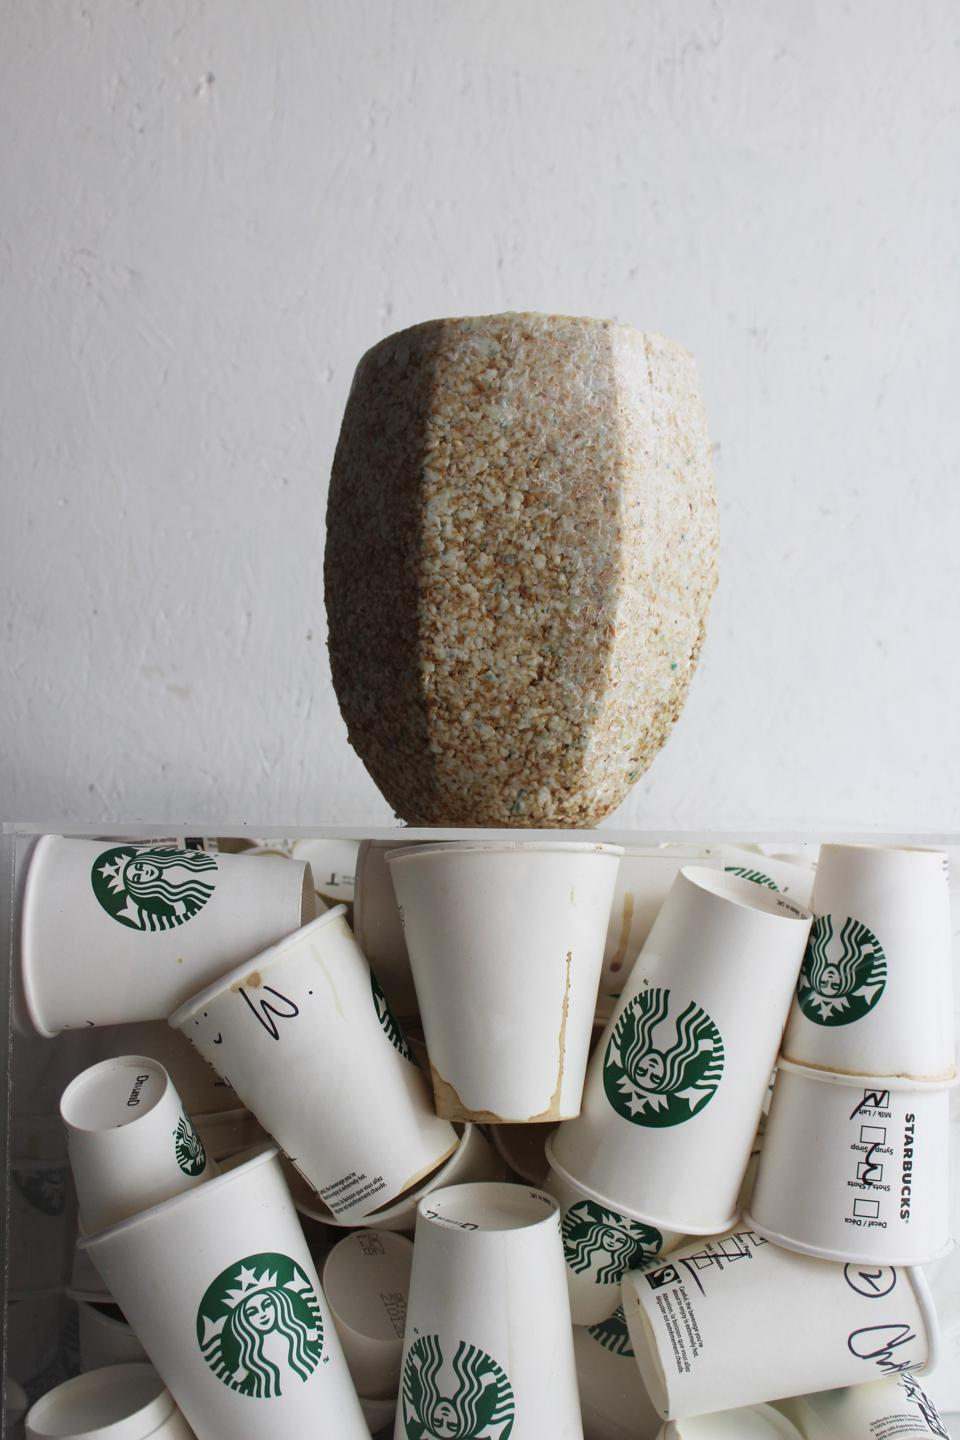 Vase made from Starbucks cup waste